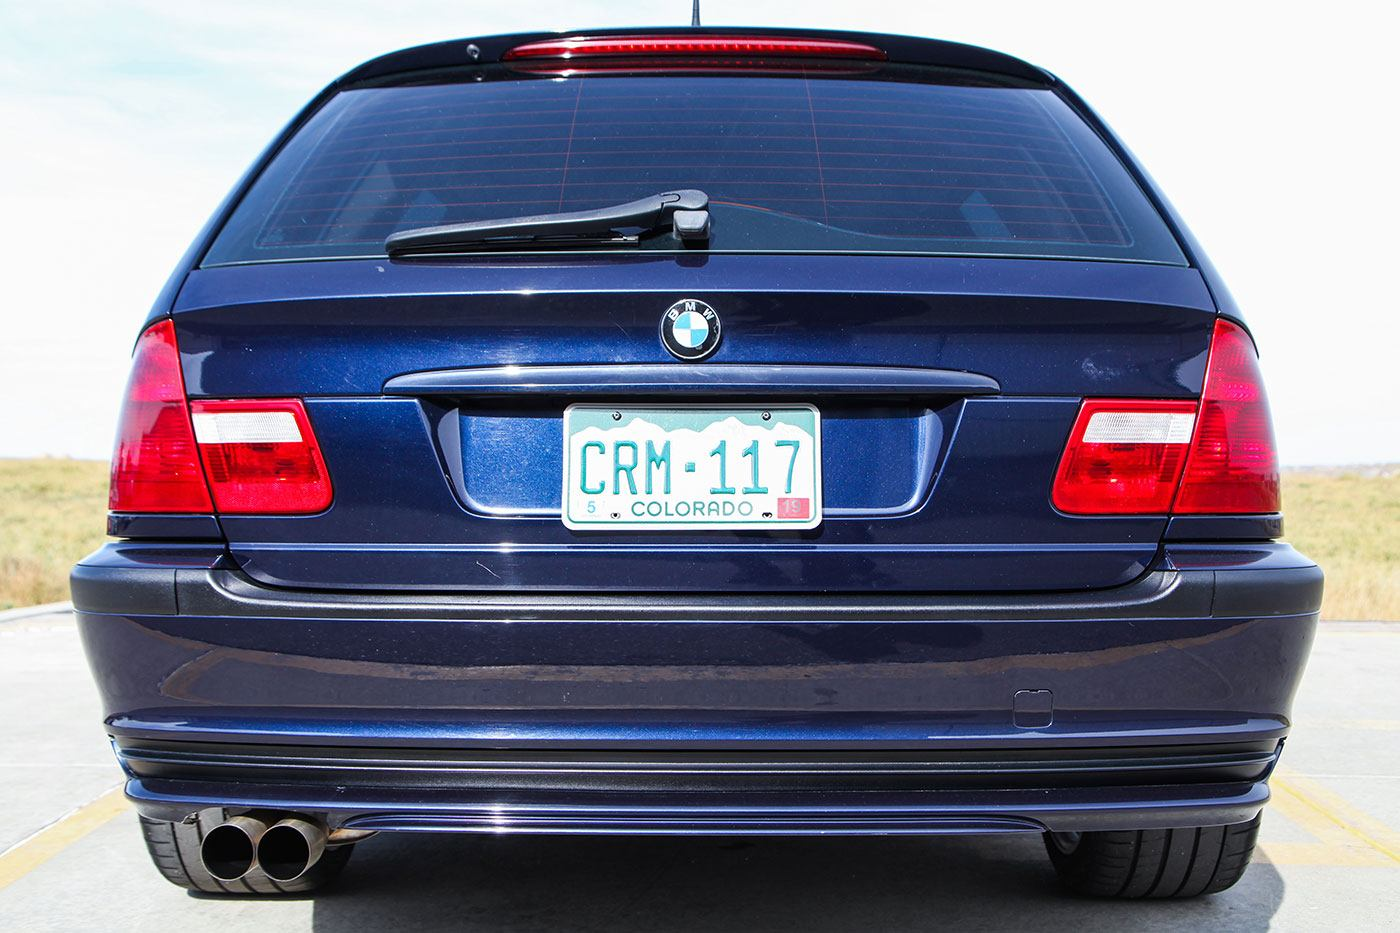 2001 BMW (E46) S54-Powered 325Xi Sport Wagon exterior photo